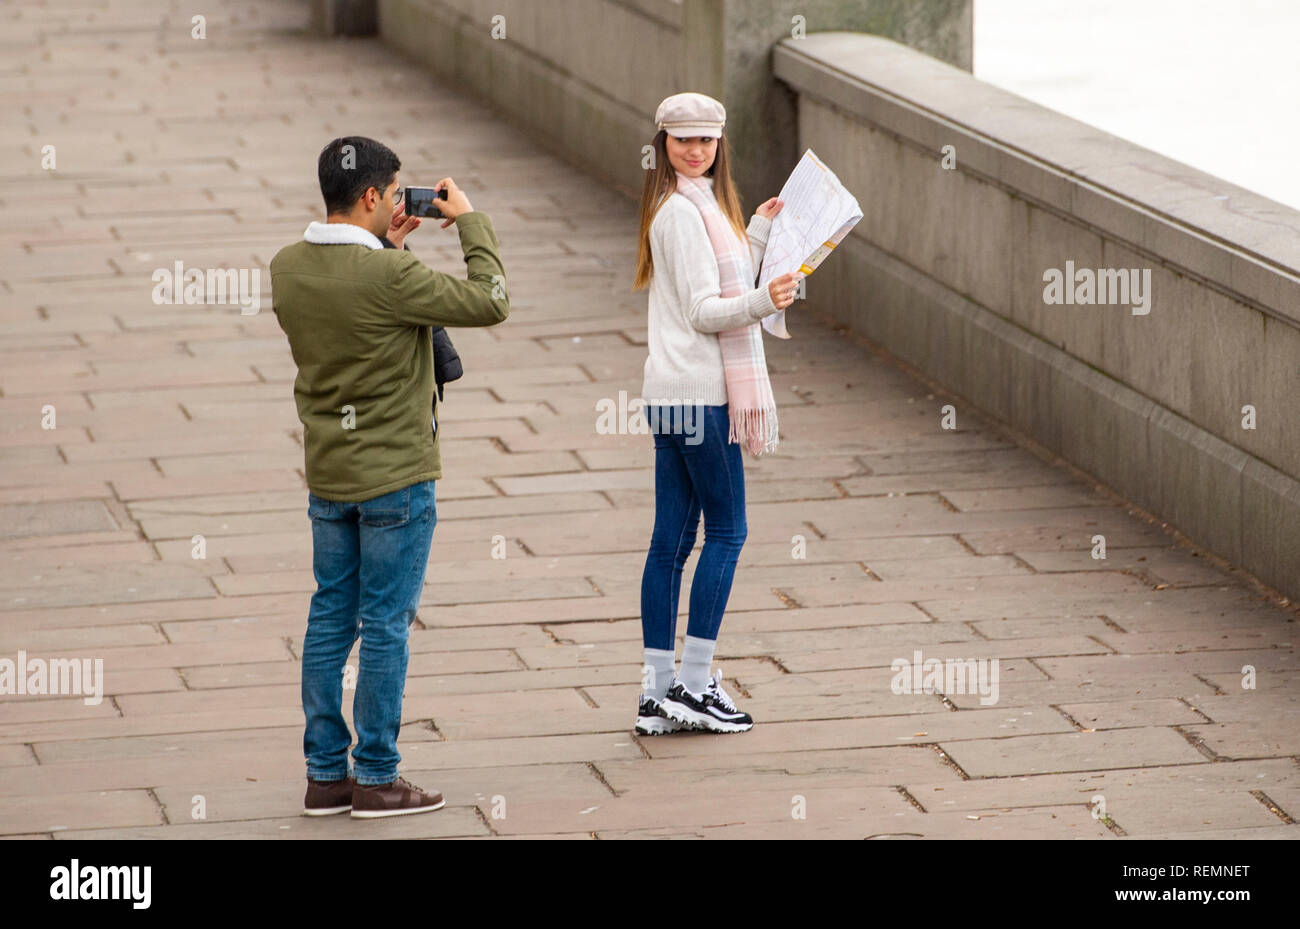 Young female tourist looking at a map being photographed by friend on the South Bank by The River Thames in London UK - Stock Image